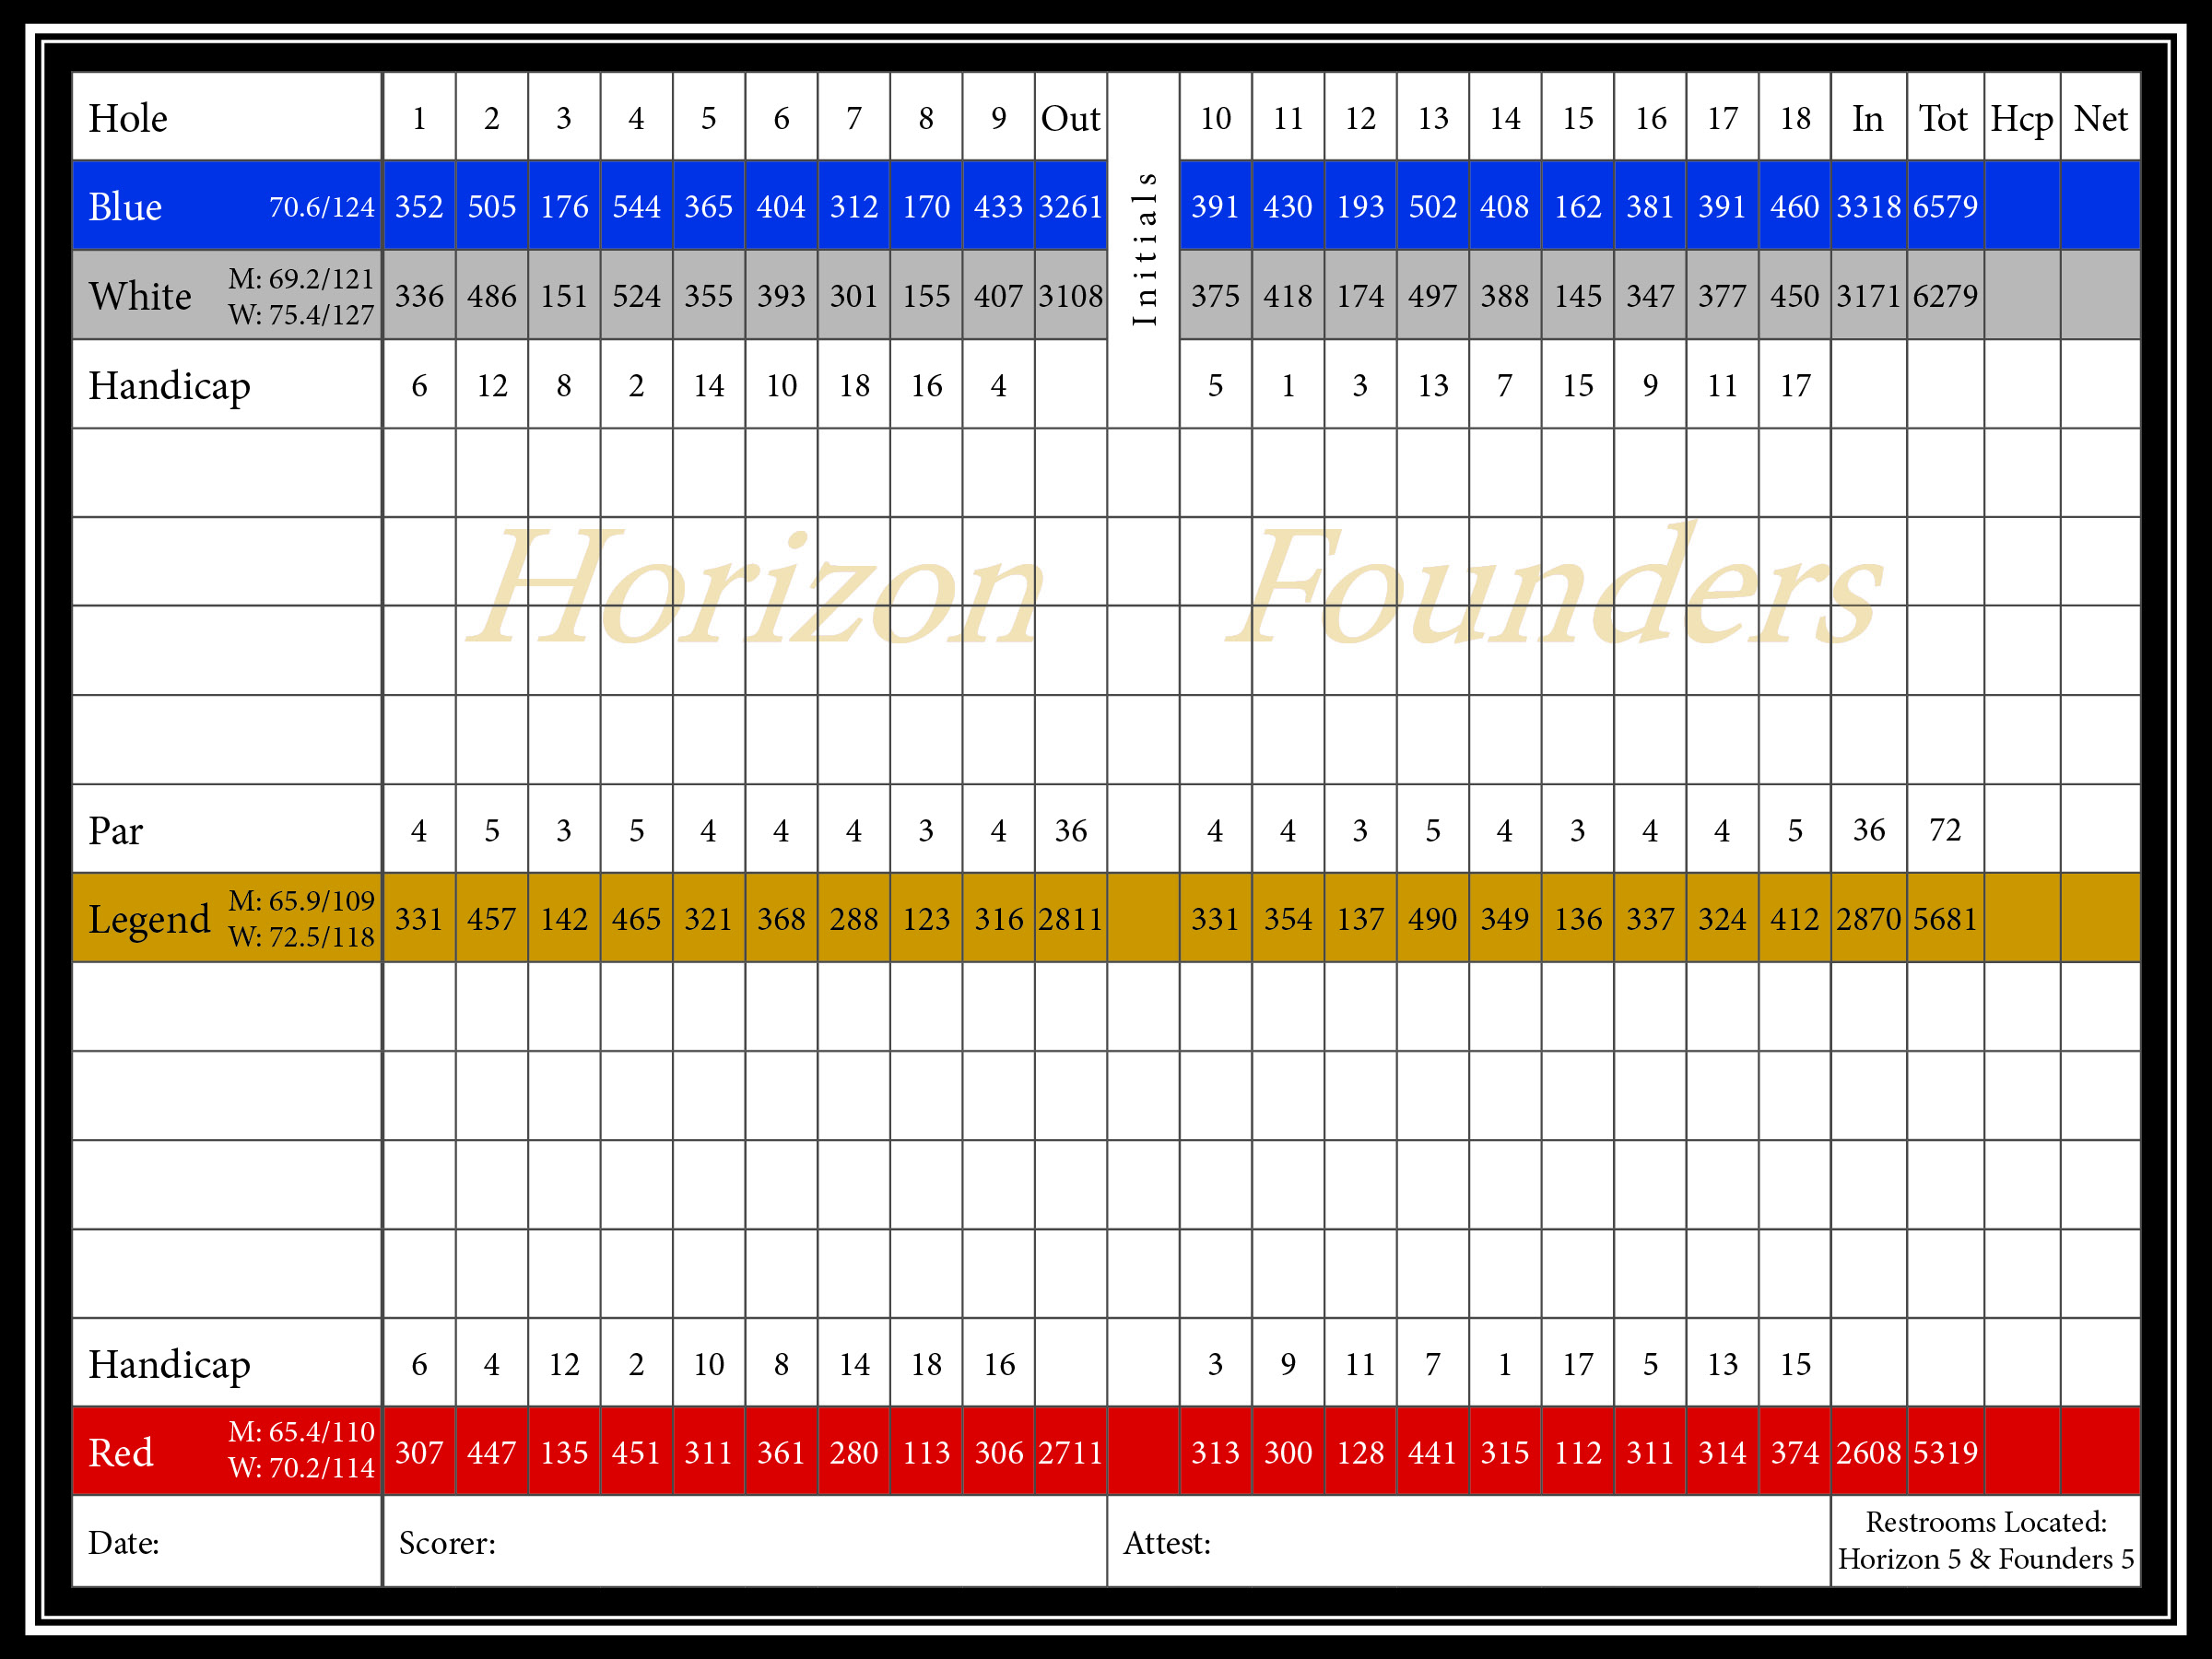 Black Mountain Scorecard Elite Golf Management